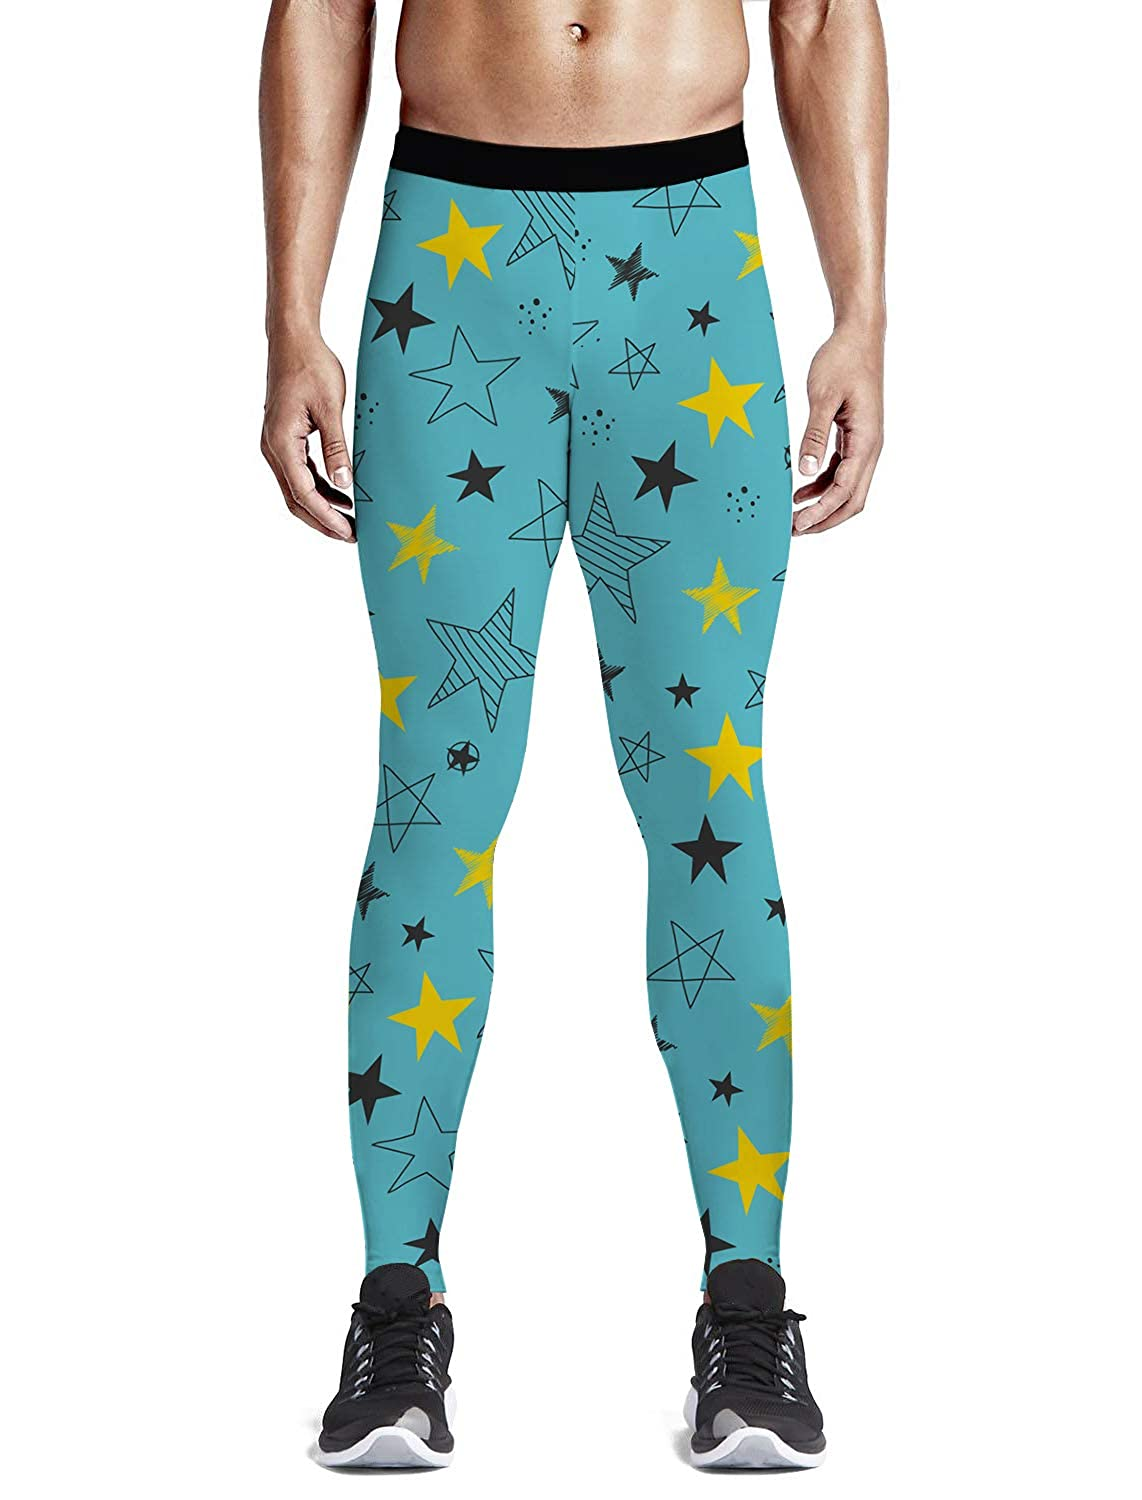 QG ZZX Fairy Girl and Tree Colorful Women Yoga Leggings Compression Yoga Pants